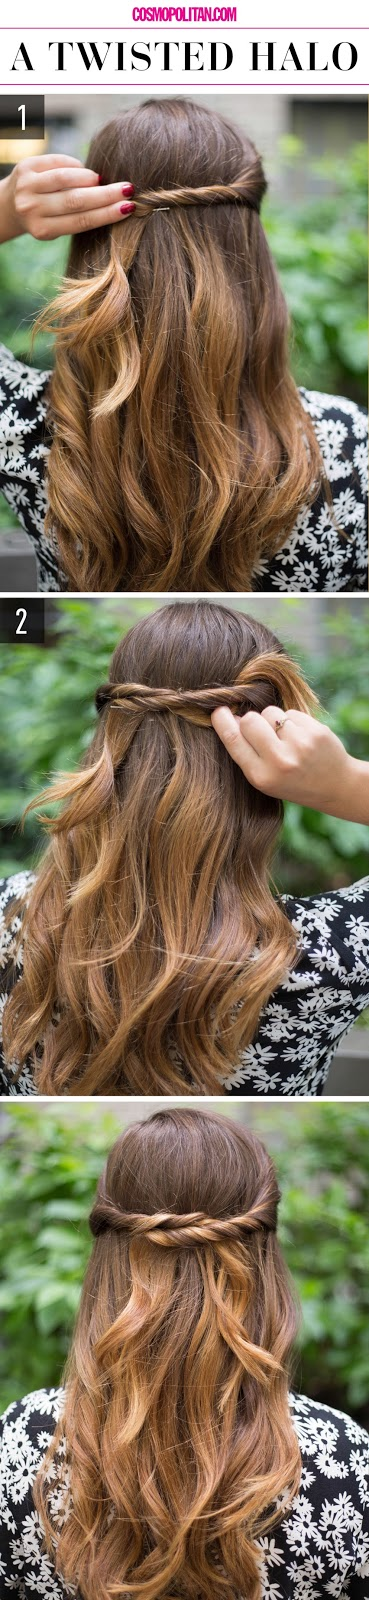 15 super easy hairstyles for lazy girls who can t even diy craft